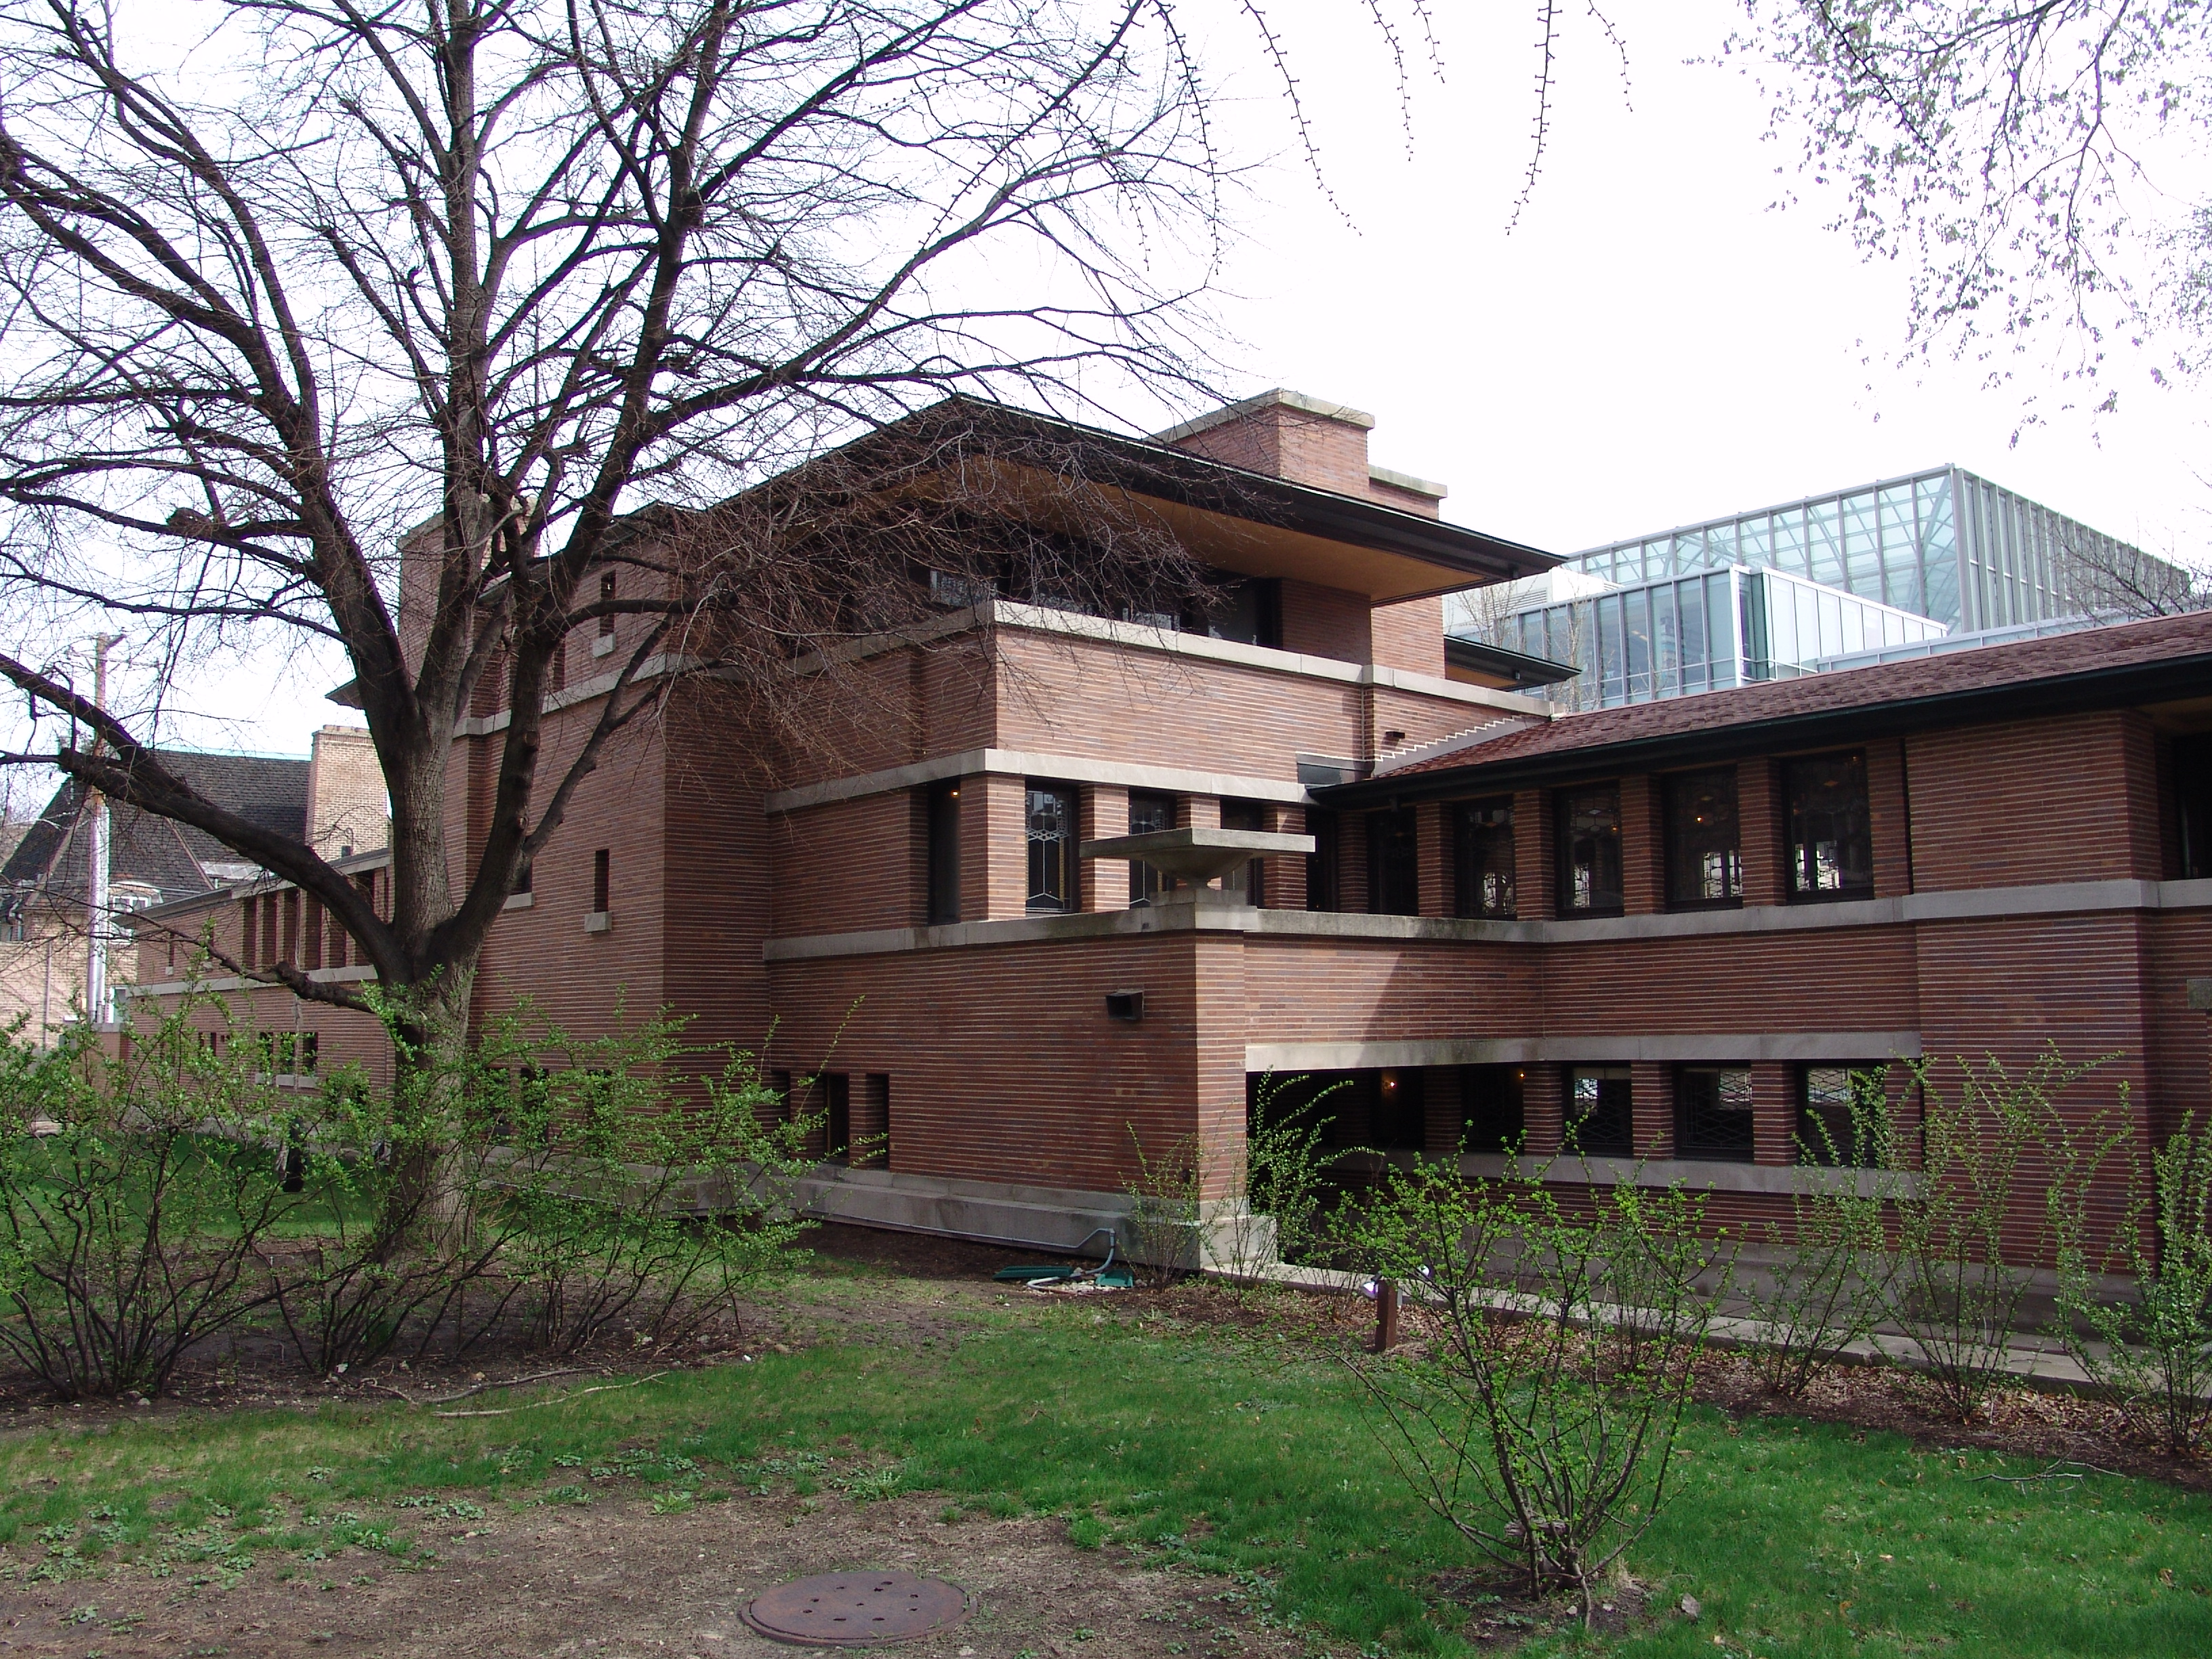 File frank lloyd wright robie house 7 jpg wikipedia for Frank lloyd wright piani per la casa